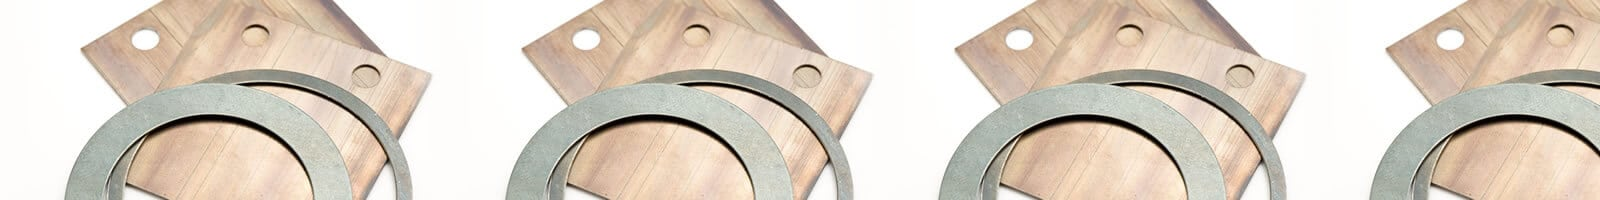 Spring steel washers